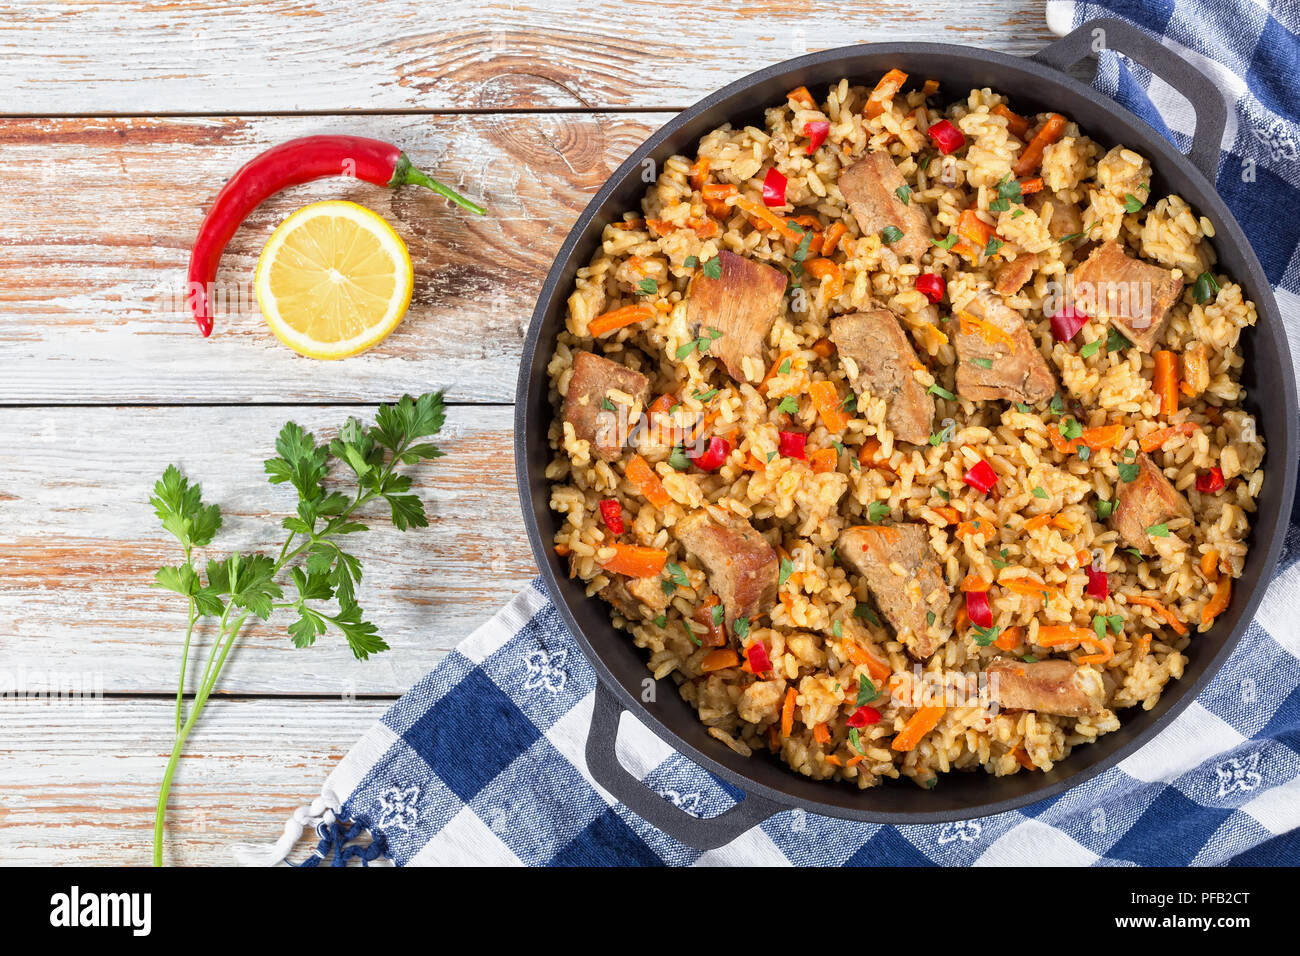 Homemade prepared paella with meat, pepper, vegetables and spices in iron pan on white peeling paint wooden planks, chili pepper , lemon slice and par - Stock Image